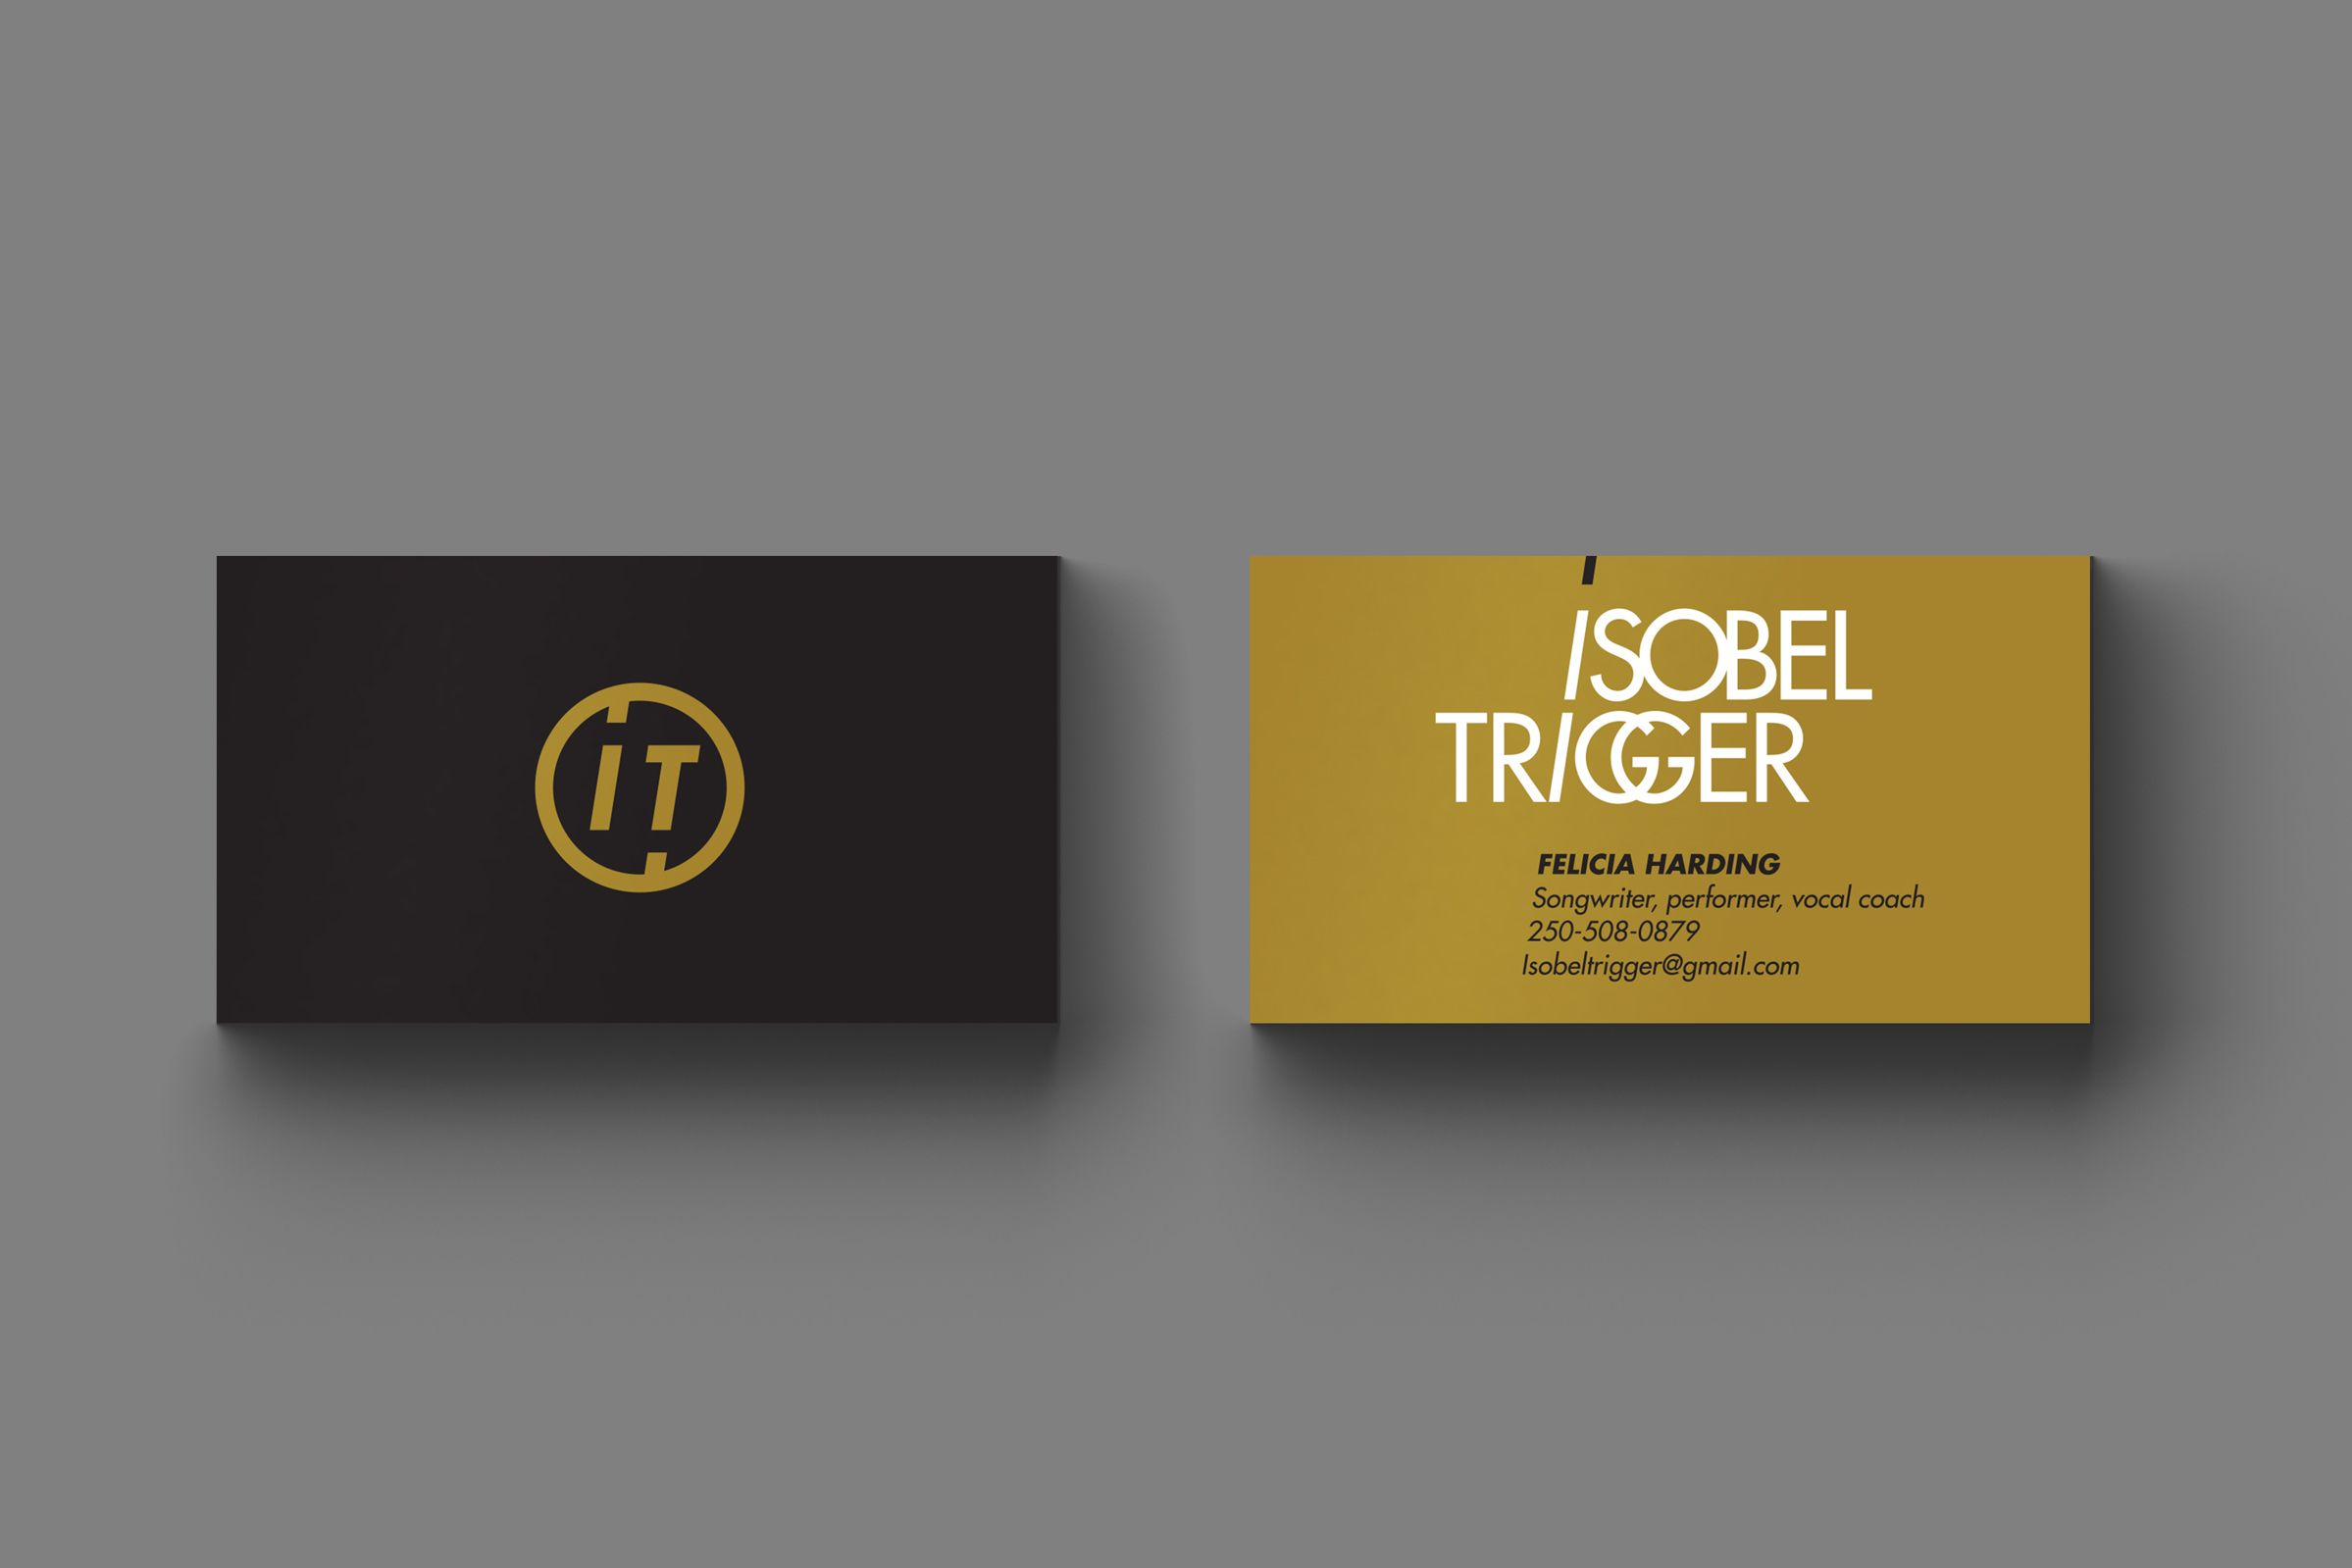 Business Cards for Isobel Trigger, a Canadian Rock Band by Ottawa Graphic Designer idApostle